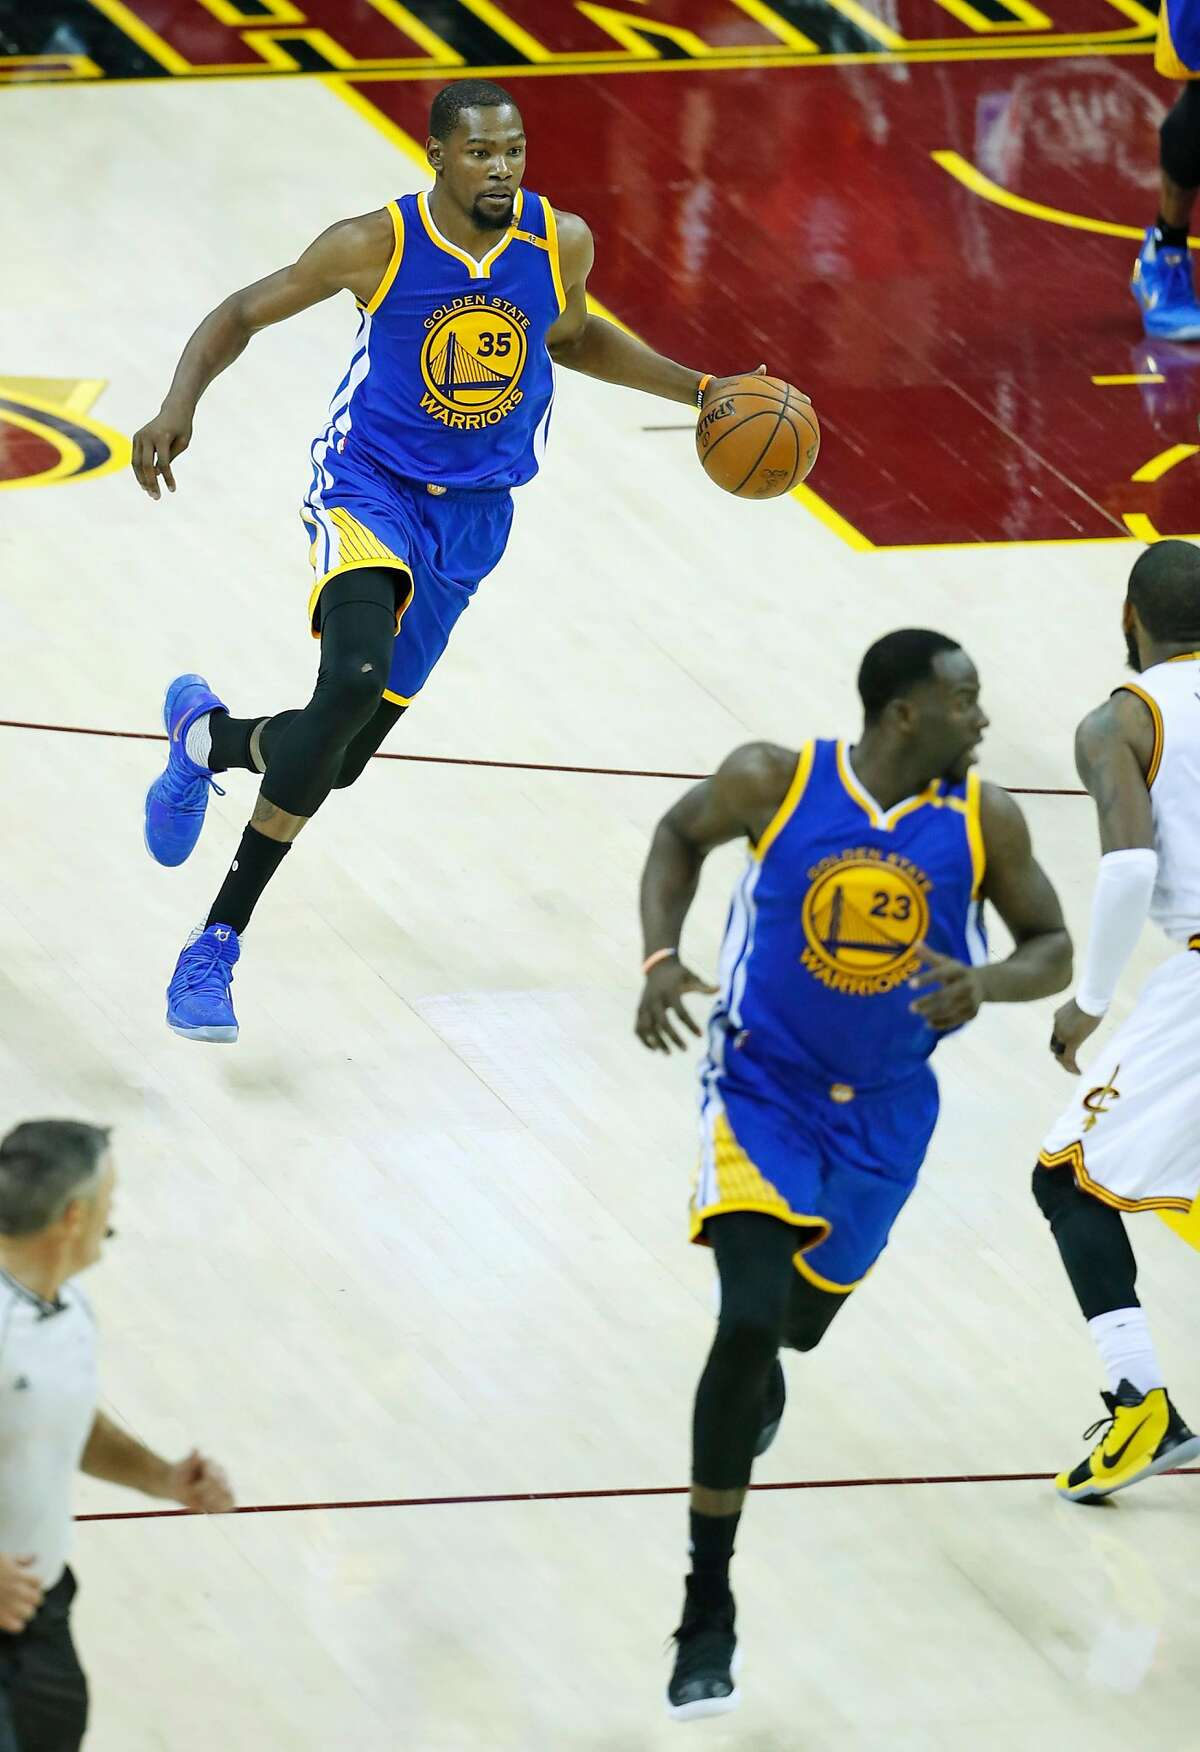 Golden State Warriors' Kevin Durant dribble sup court against Cleveland Cavaliers in Warriors' 118-113 win in Game 3 of the NBA Finals at Quicken Loans Arena in Cleveland, Ohio, on Wednesday, June 7, 2017.